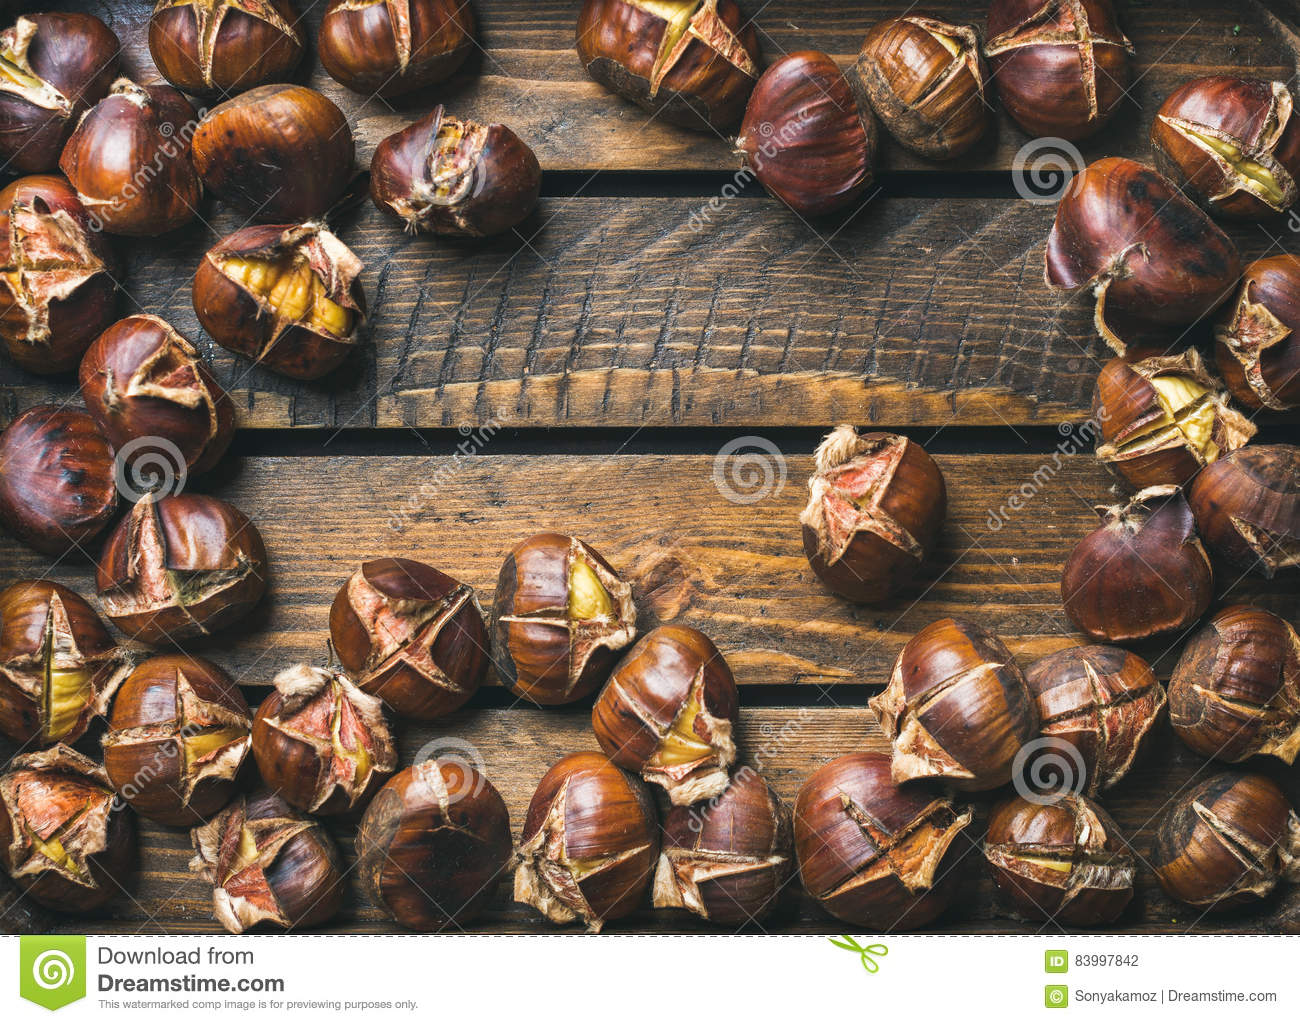 Close-up of roasted chestnuts over rustic wooden background